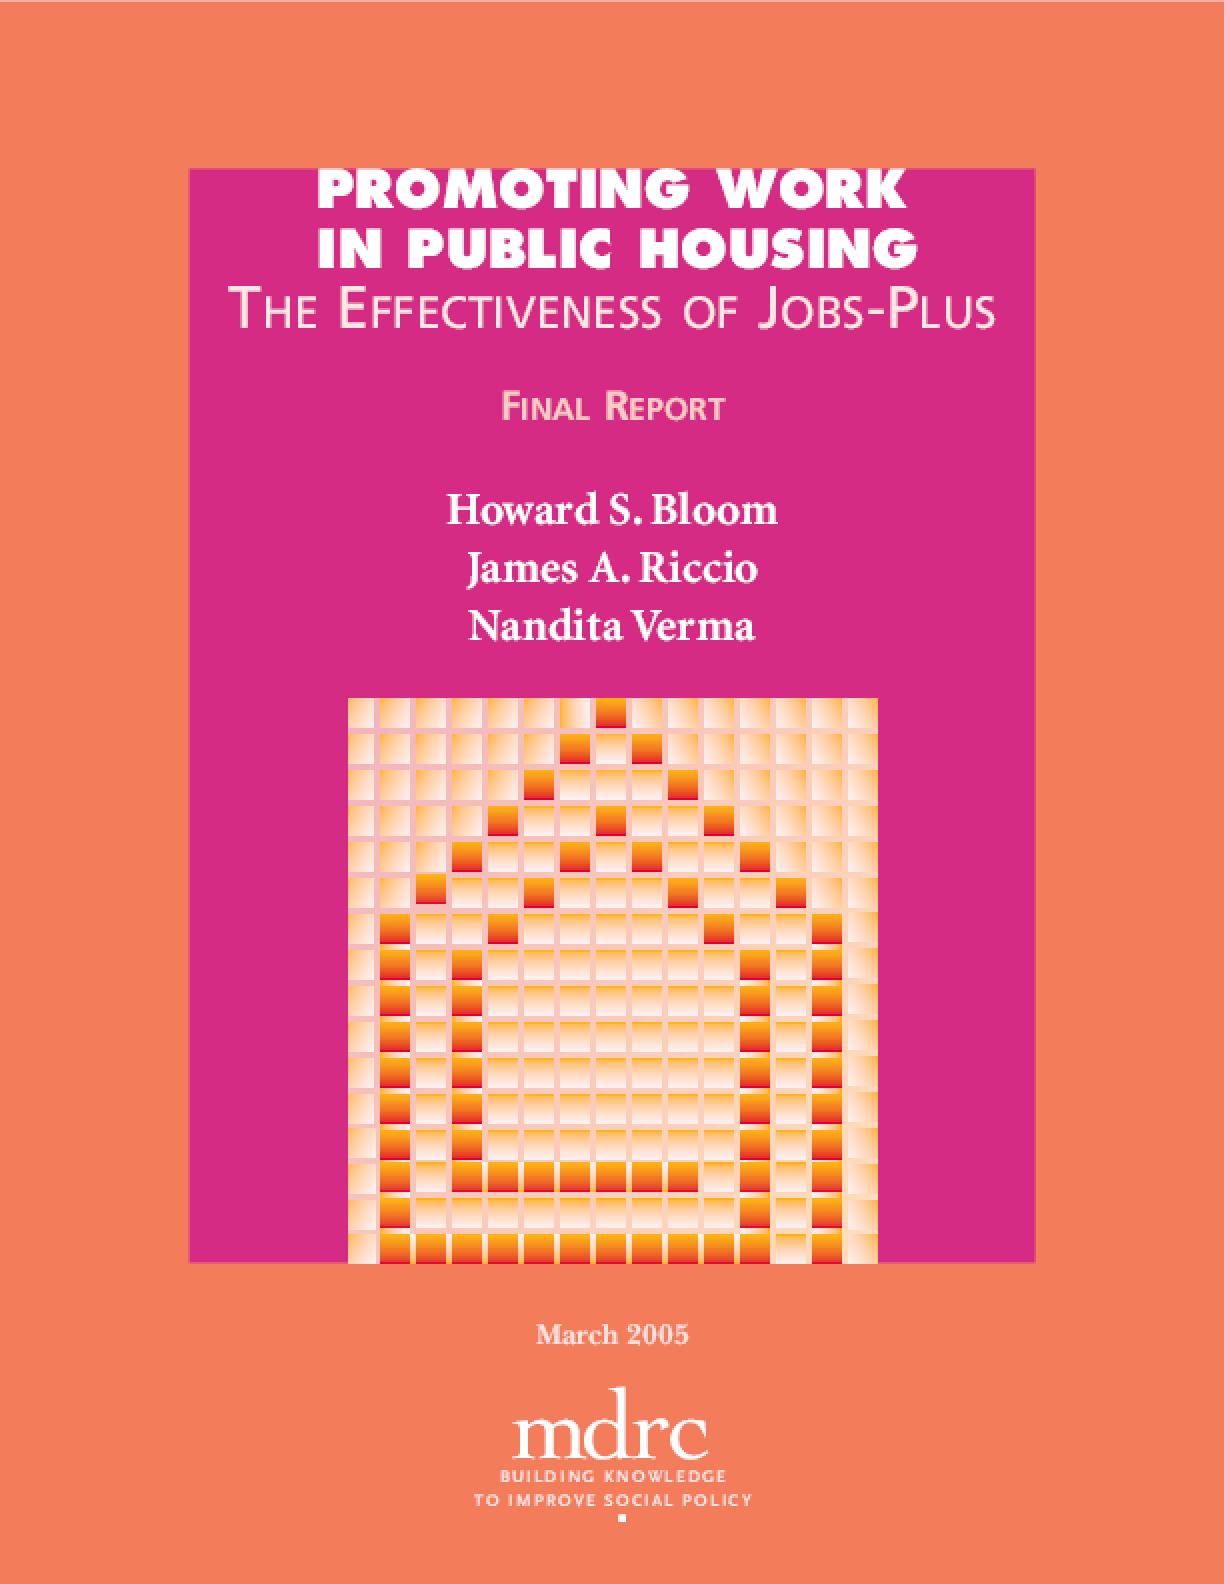 Promoting Work in Public Housing: The Effectiveness of Job-Plus